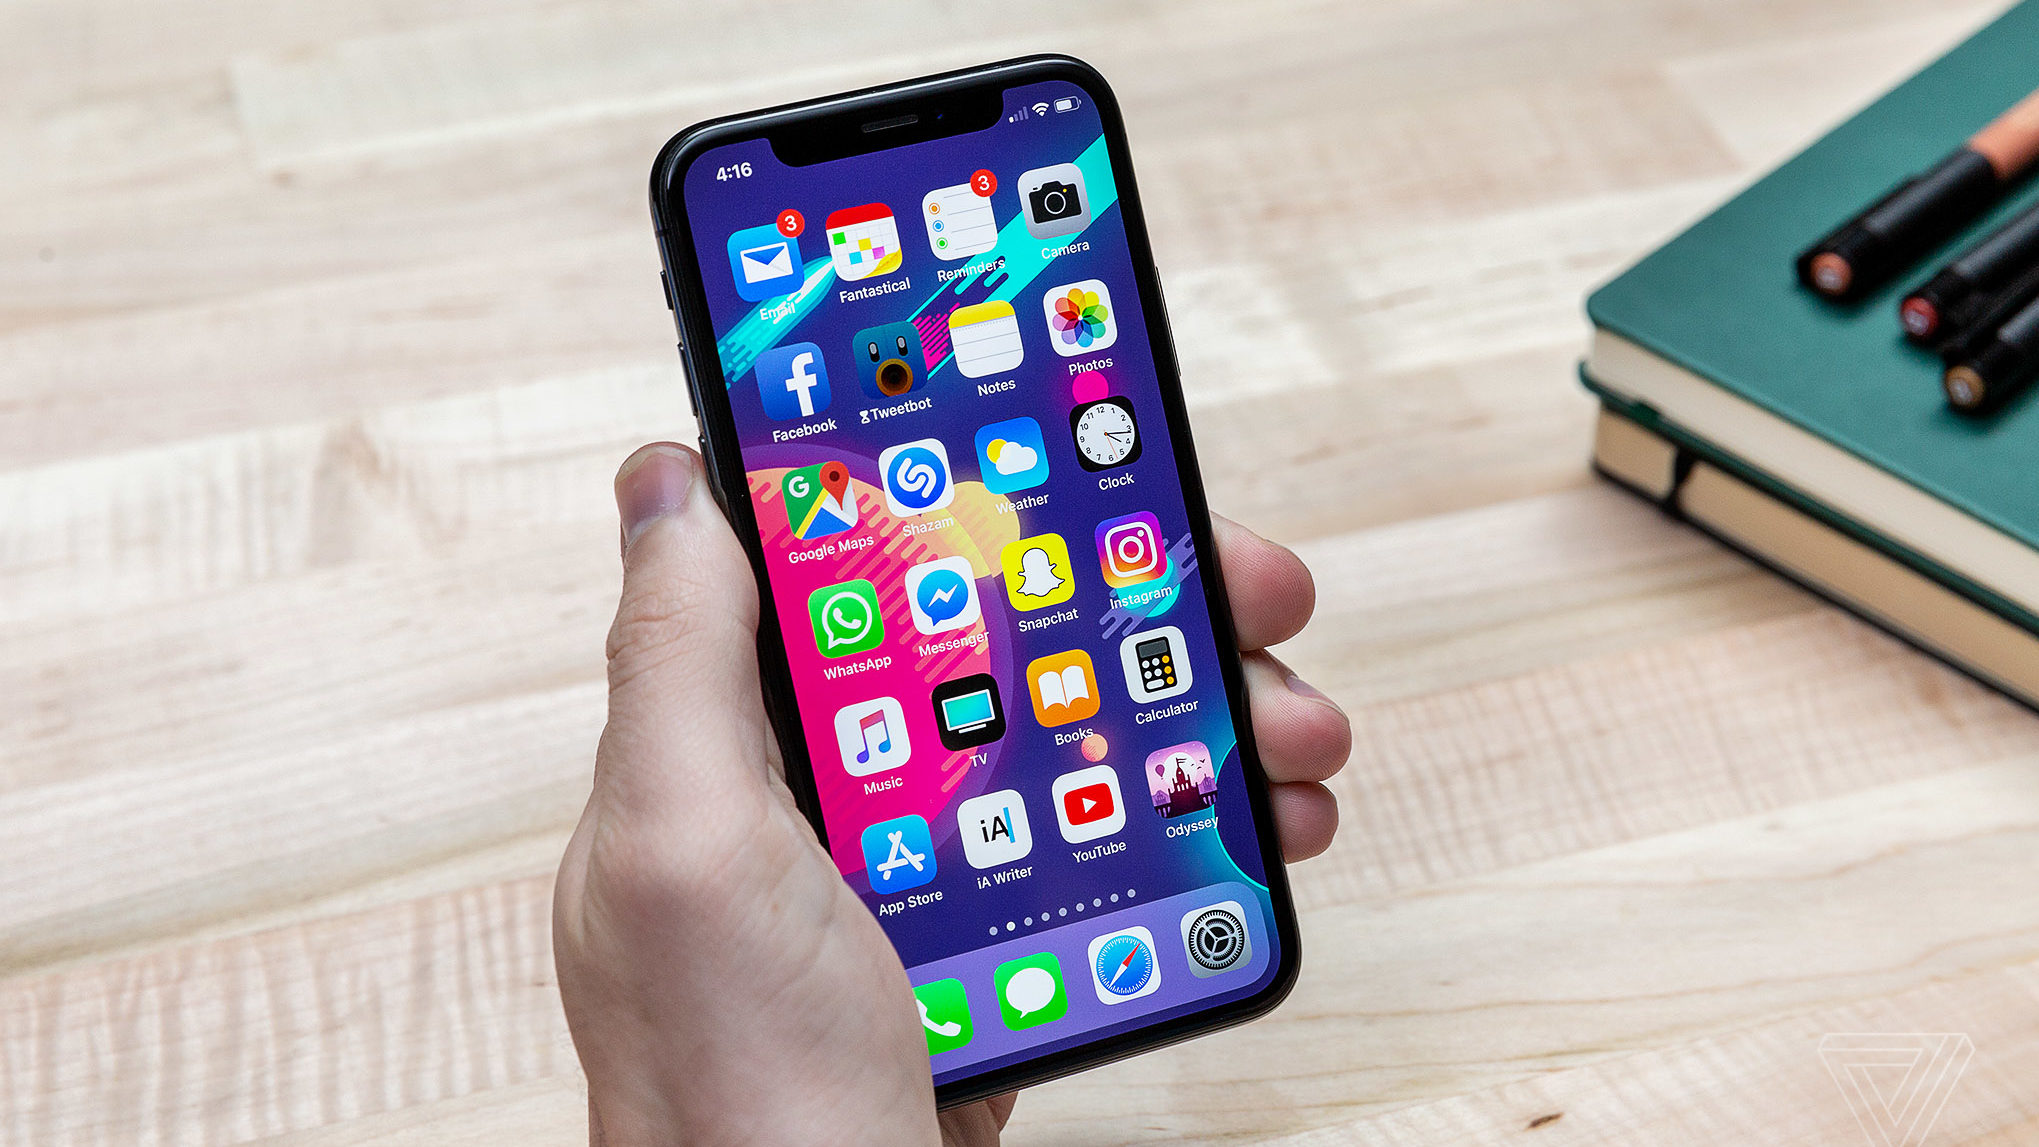 Apple iOS 12.4 iOS 11 iOS 13 update release date